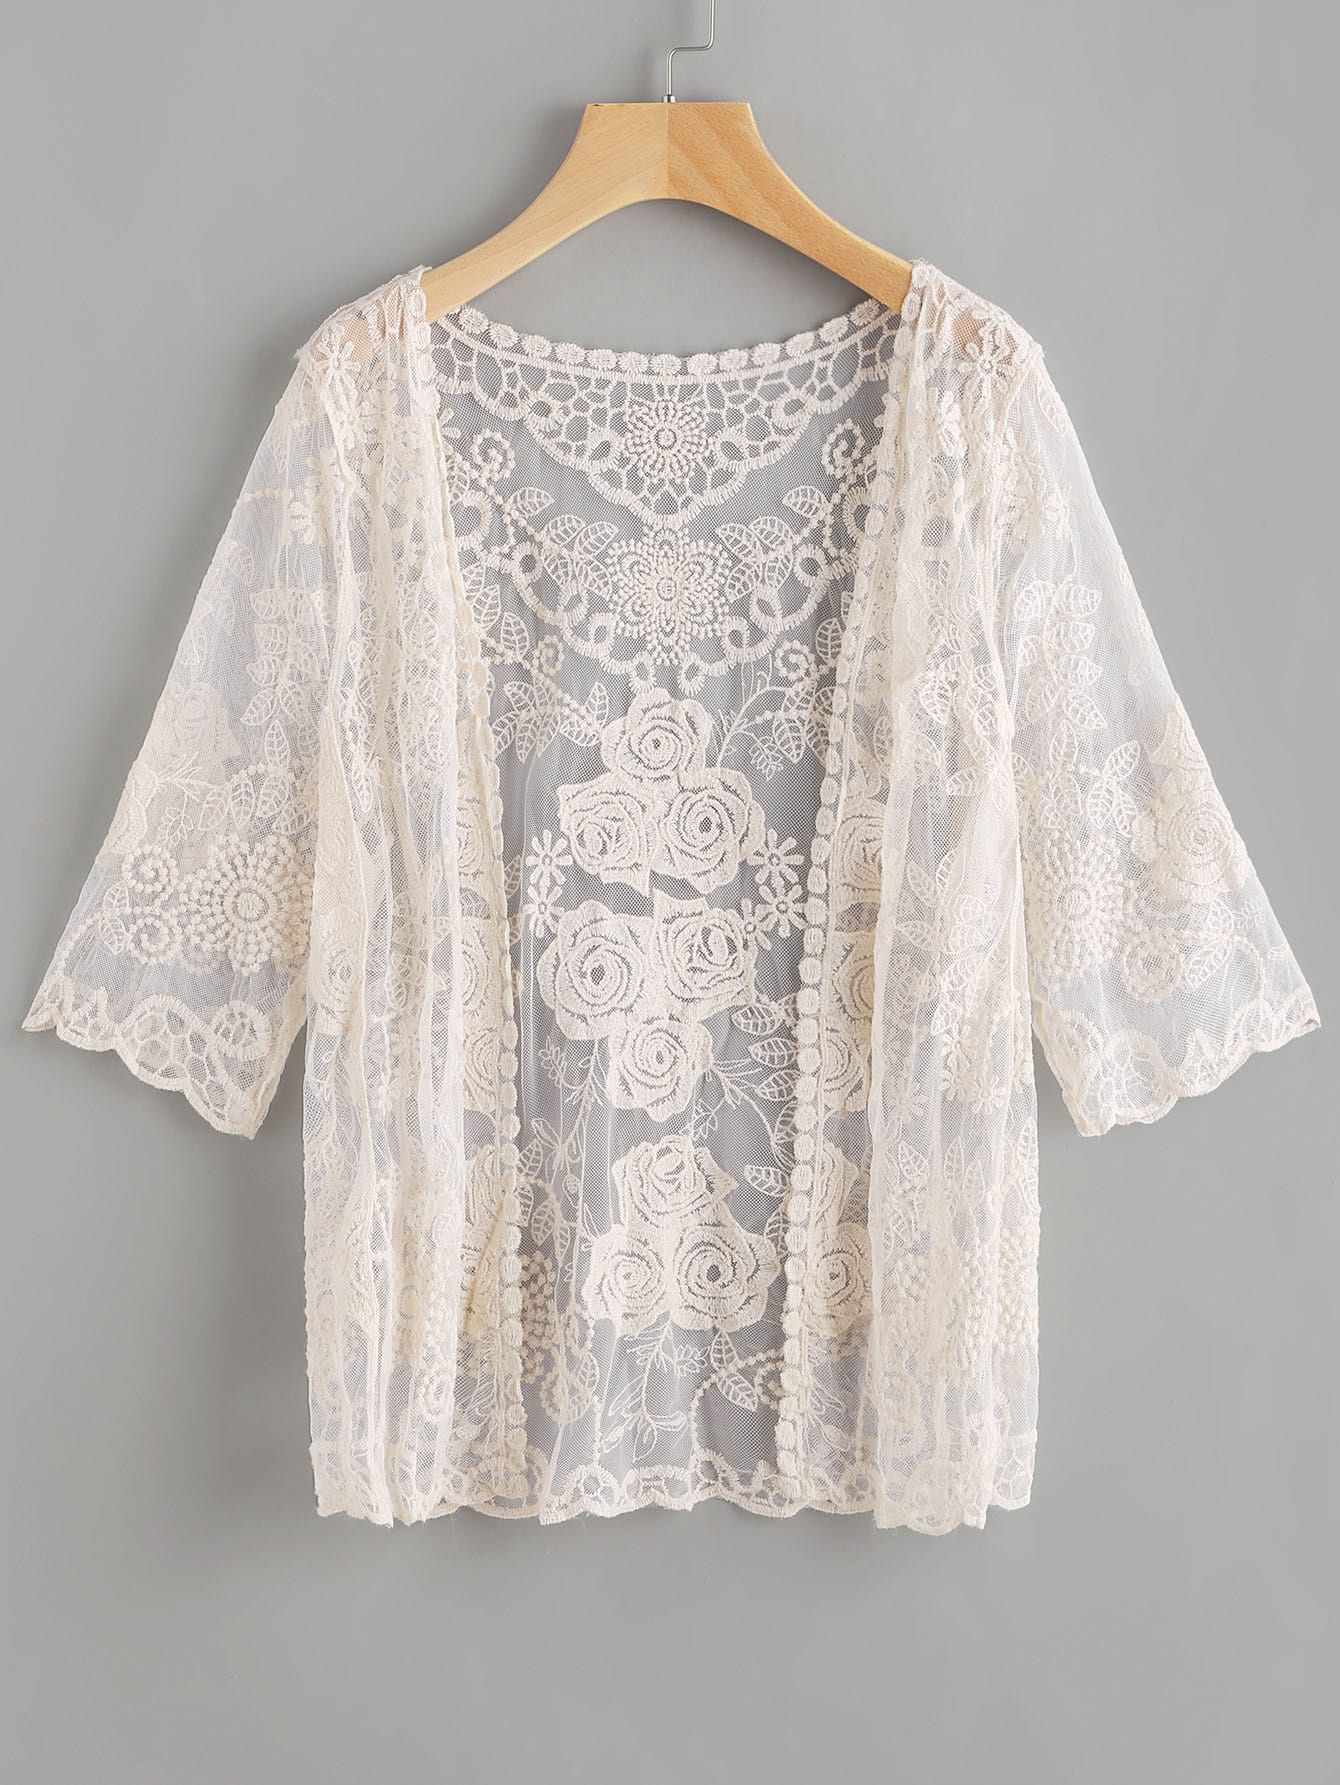 White Lace Shirts For Women